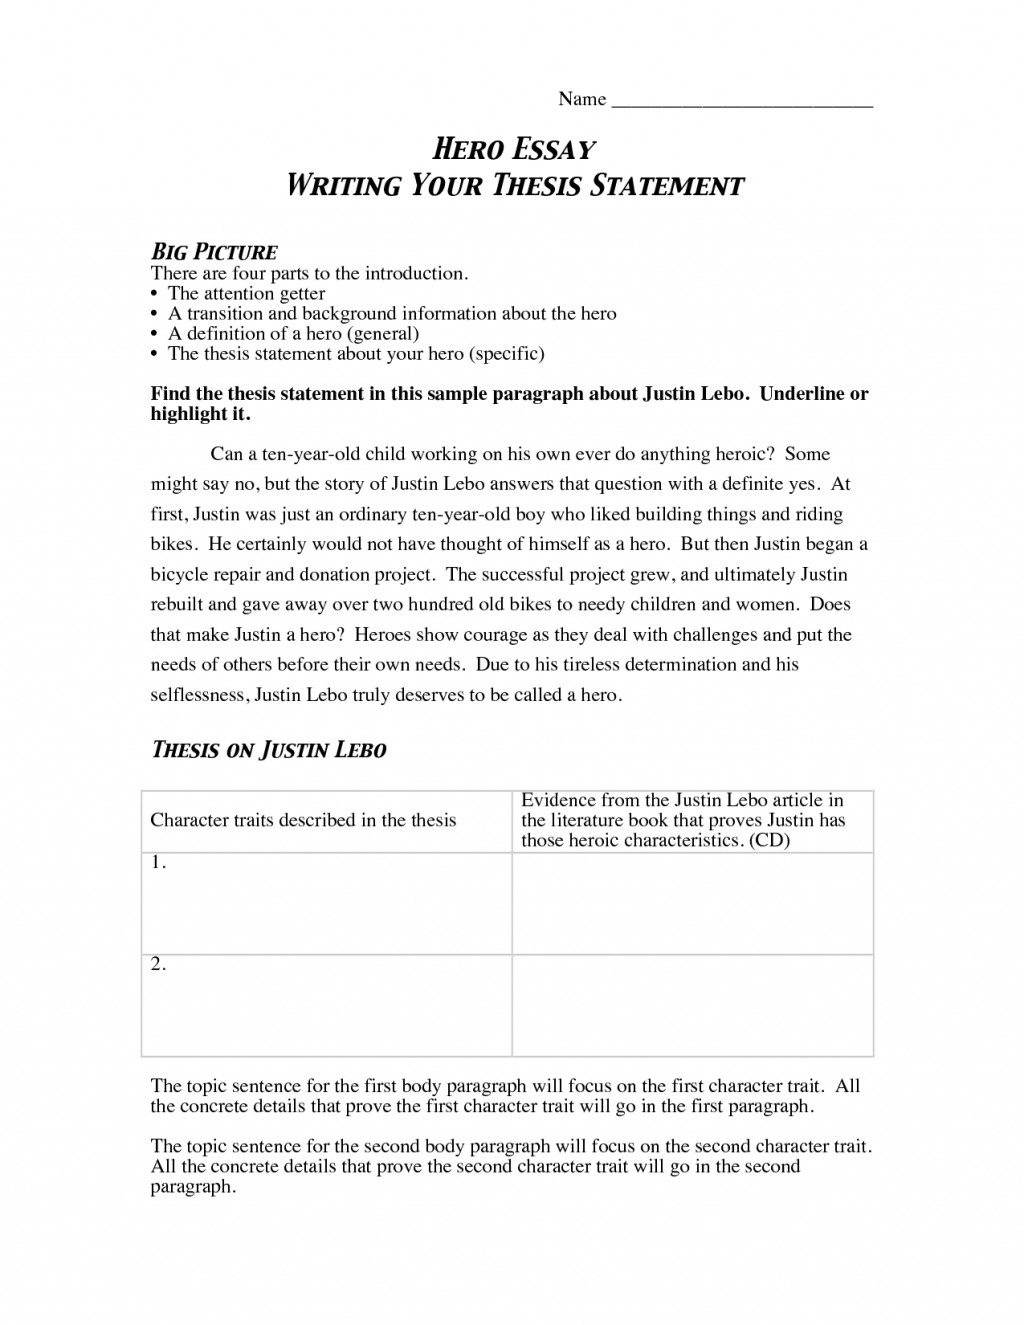 027 Kfvtsngbe0 Essay Example What Is Thesis Statement In Fascinating A An The Purpose Of Argumentative Informative Large